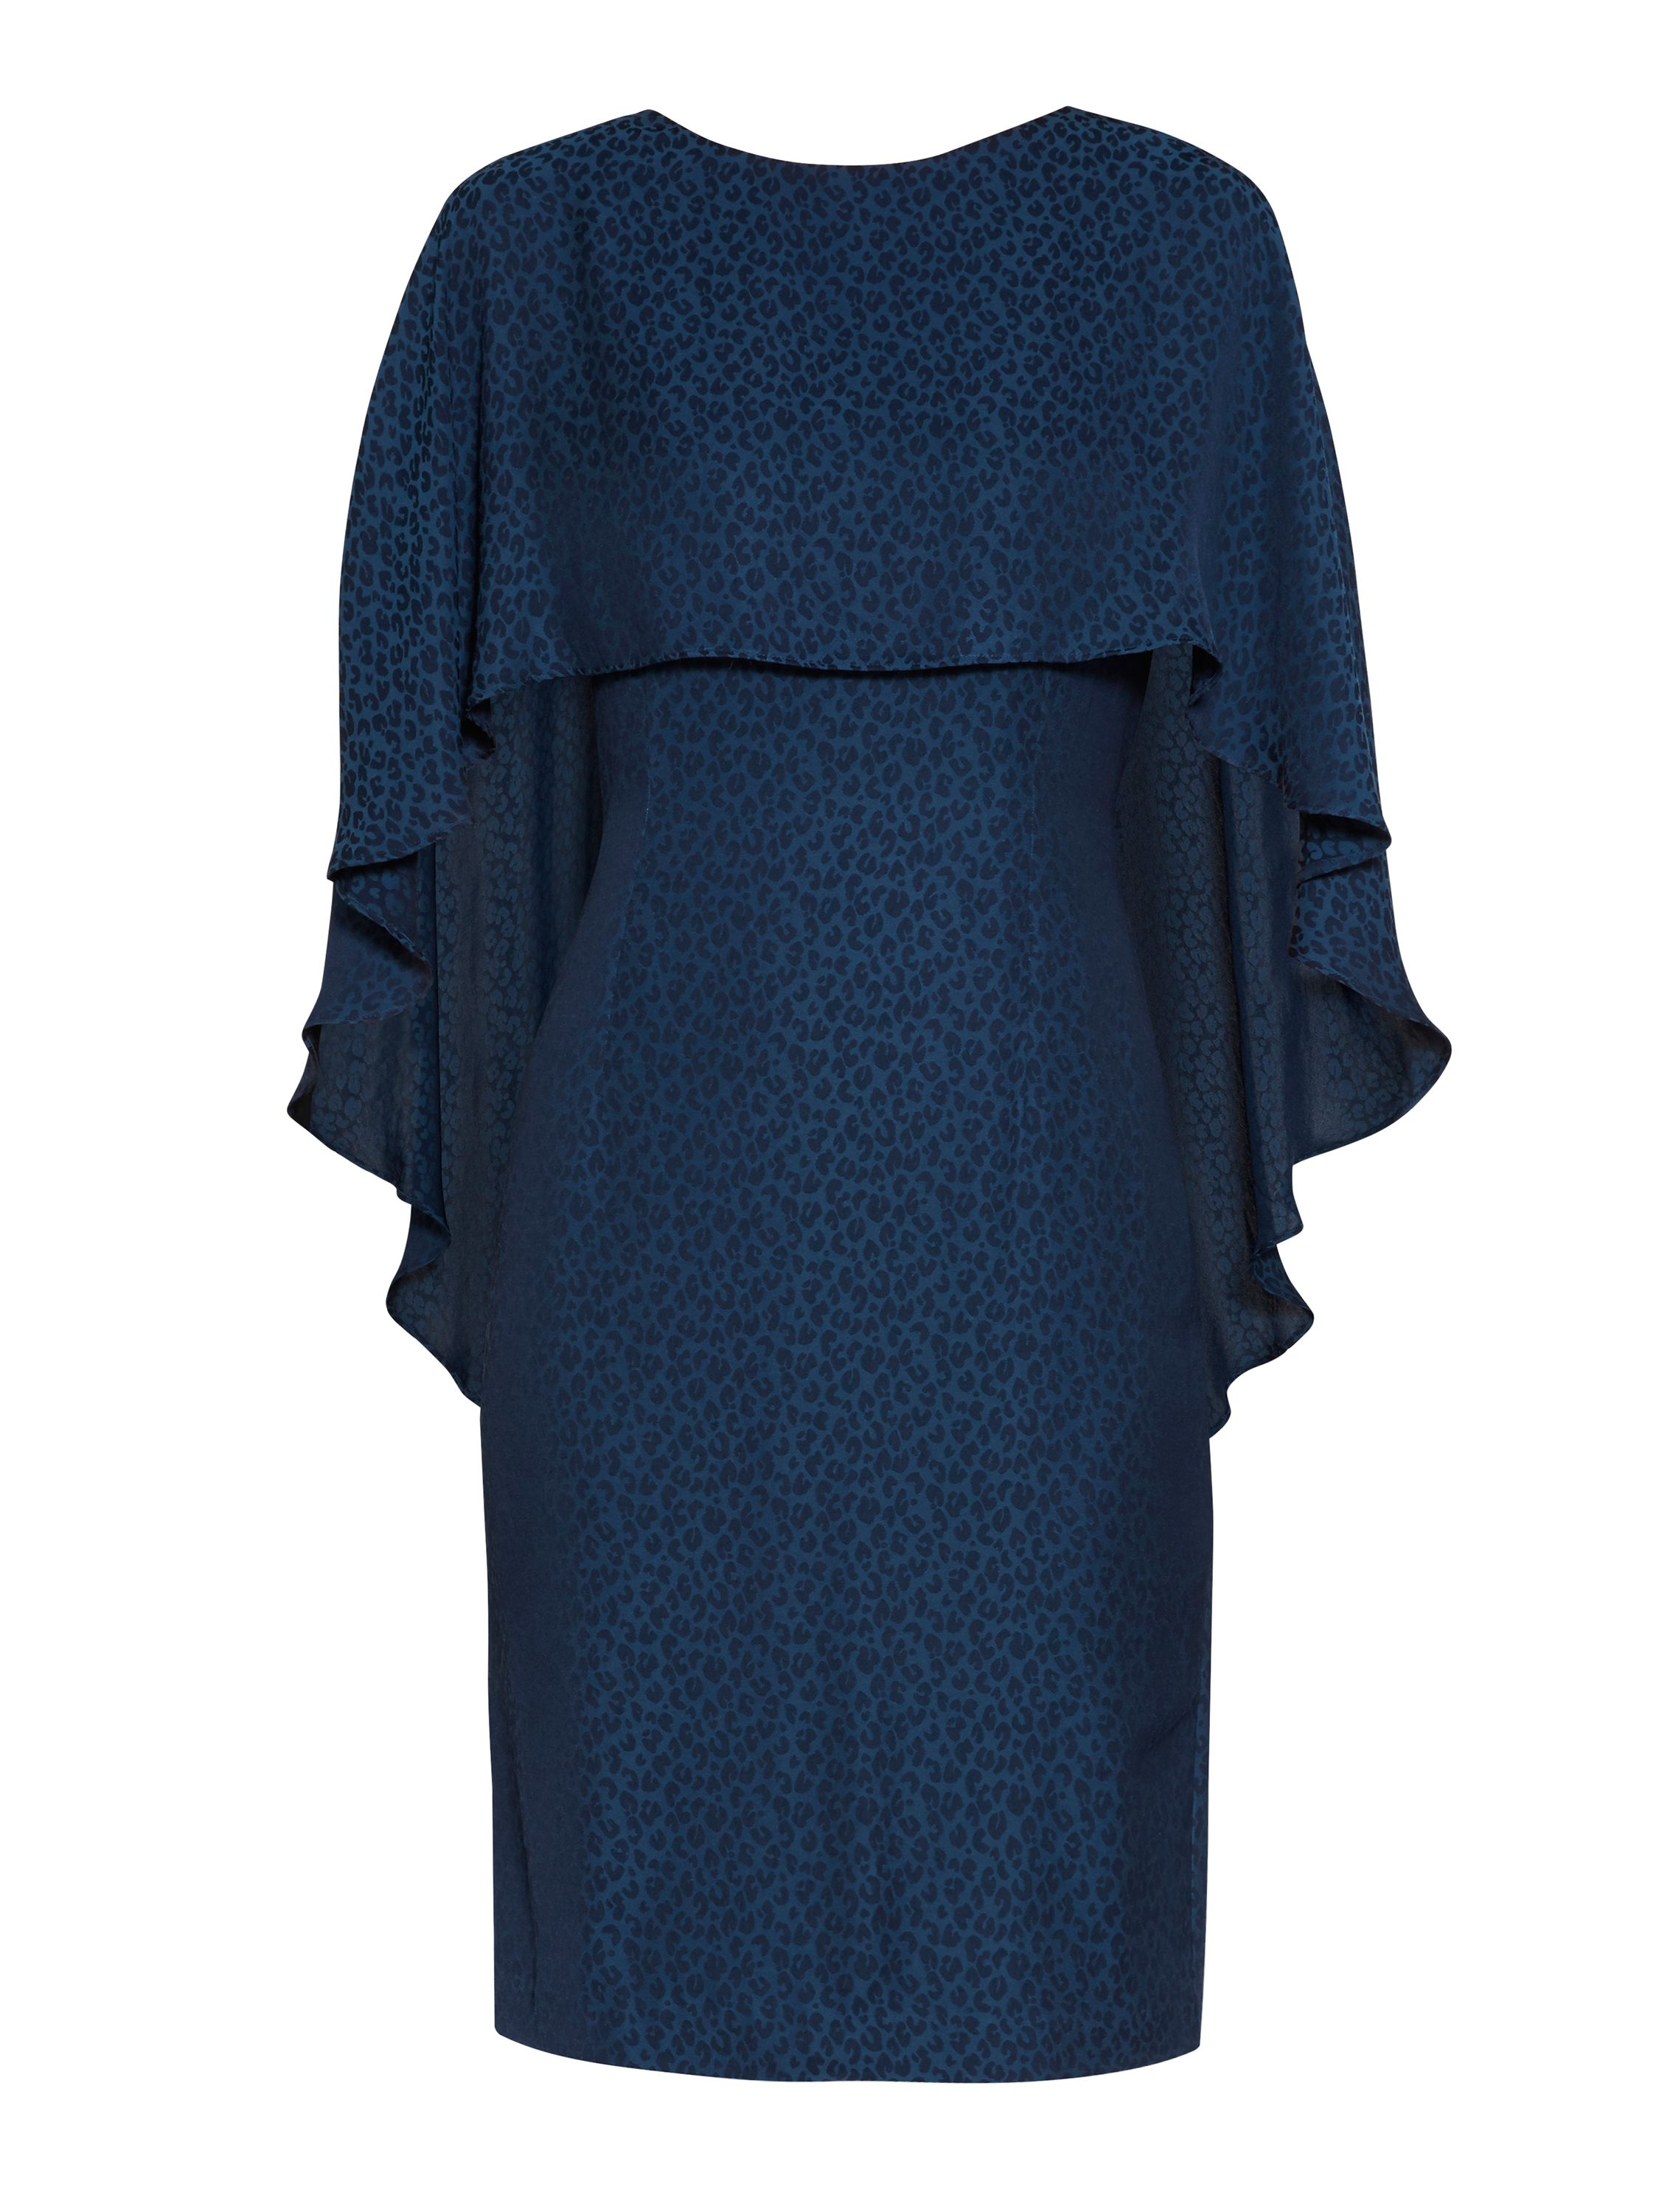 Gina Bacconi Lightweight animal jacquard dress, Blue